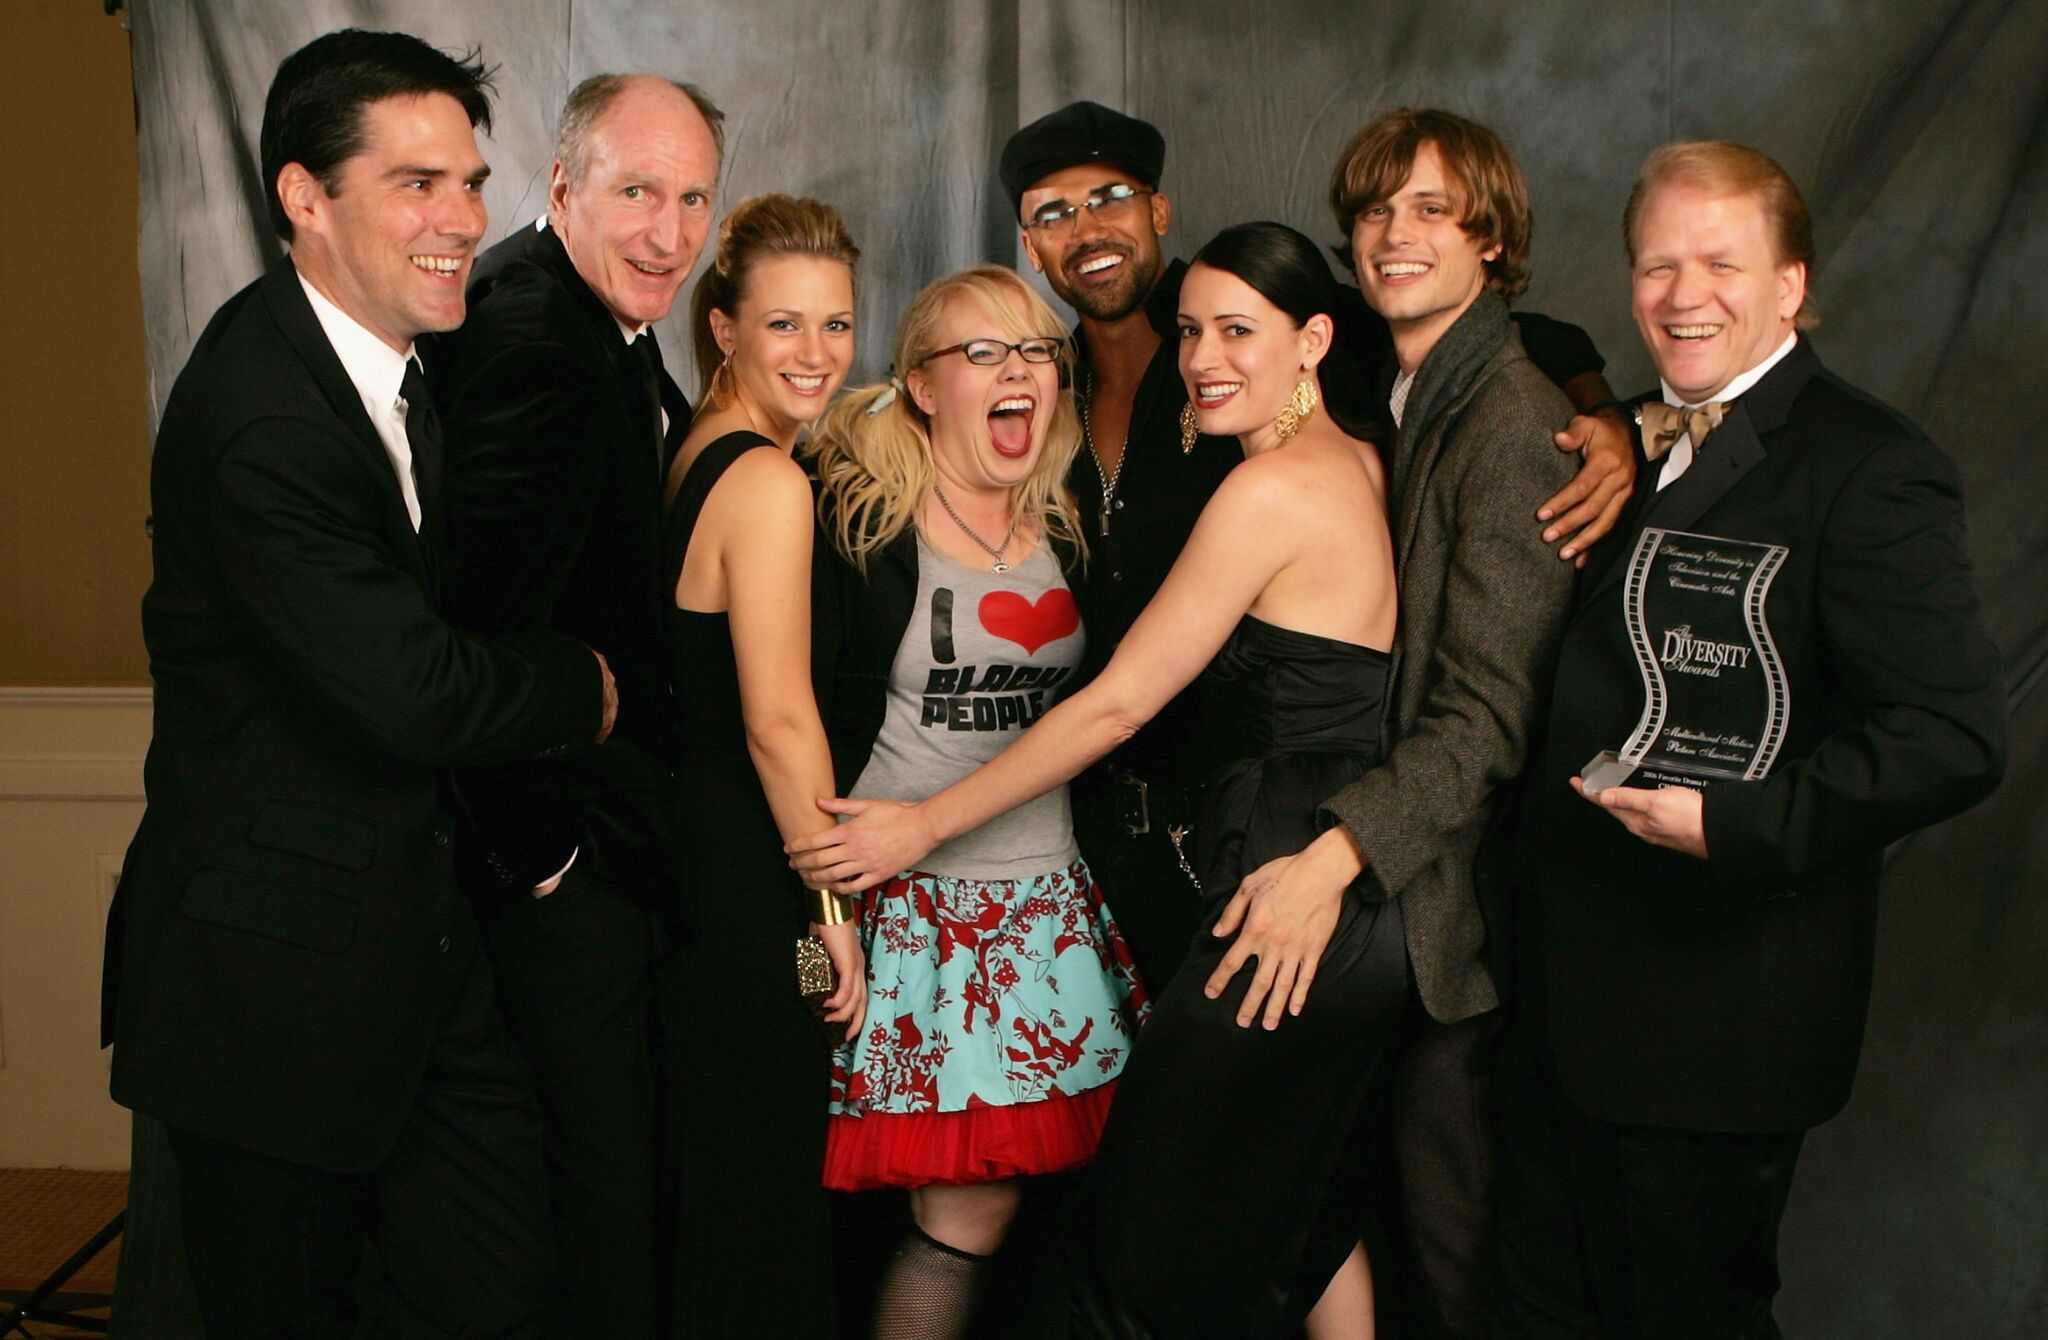 """""""Criminal Minds"""" actor Thomas Gibson, unknown actor, actress A.J. Cook, actress Kirsten Vangsness, actor Shemar Moore, actress Paget Brewster, actor Matthew Gray Gubler and Executive Producer Ed Bernero pose in the portrait studio during the 14th Annual Diversity Awards Gala 